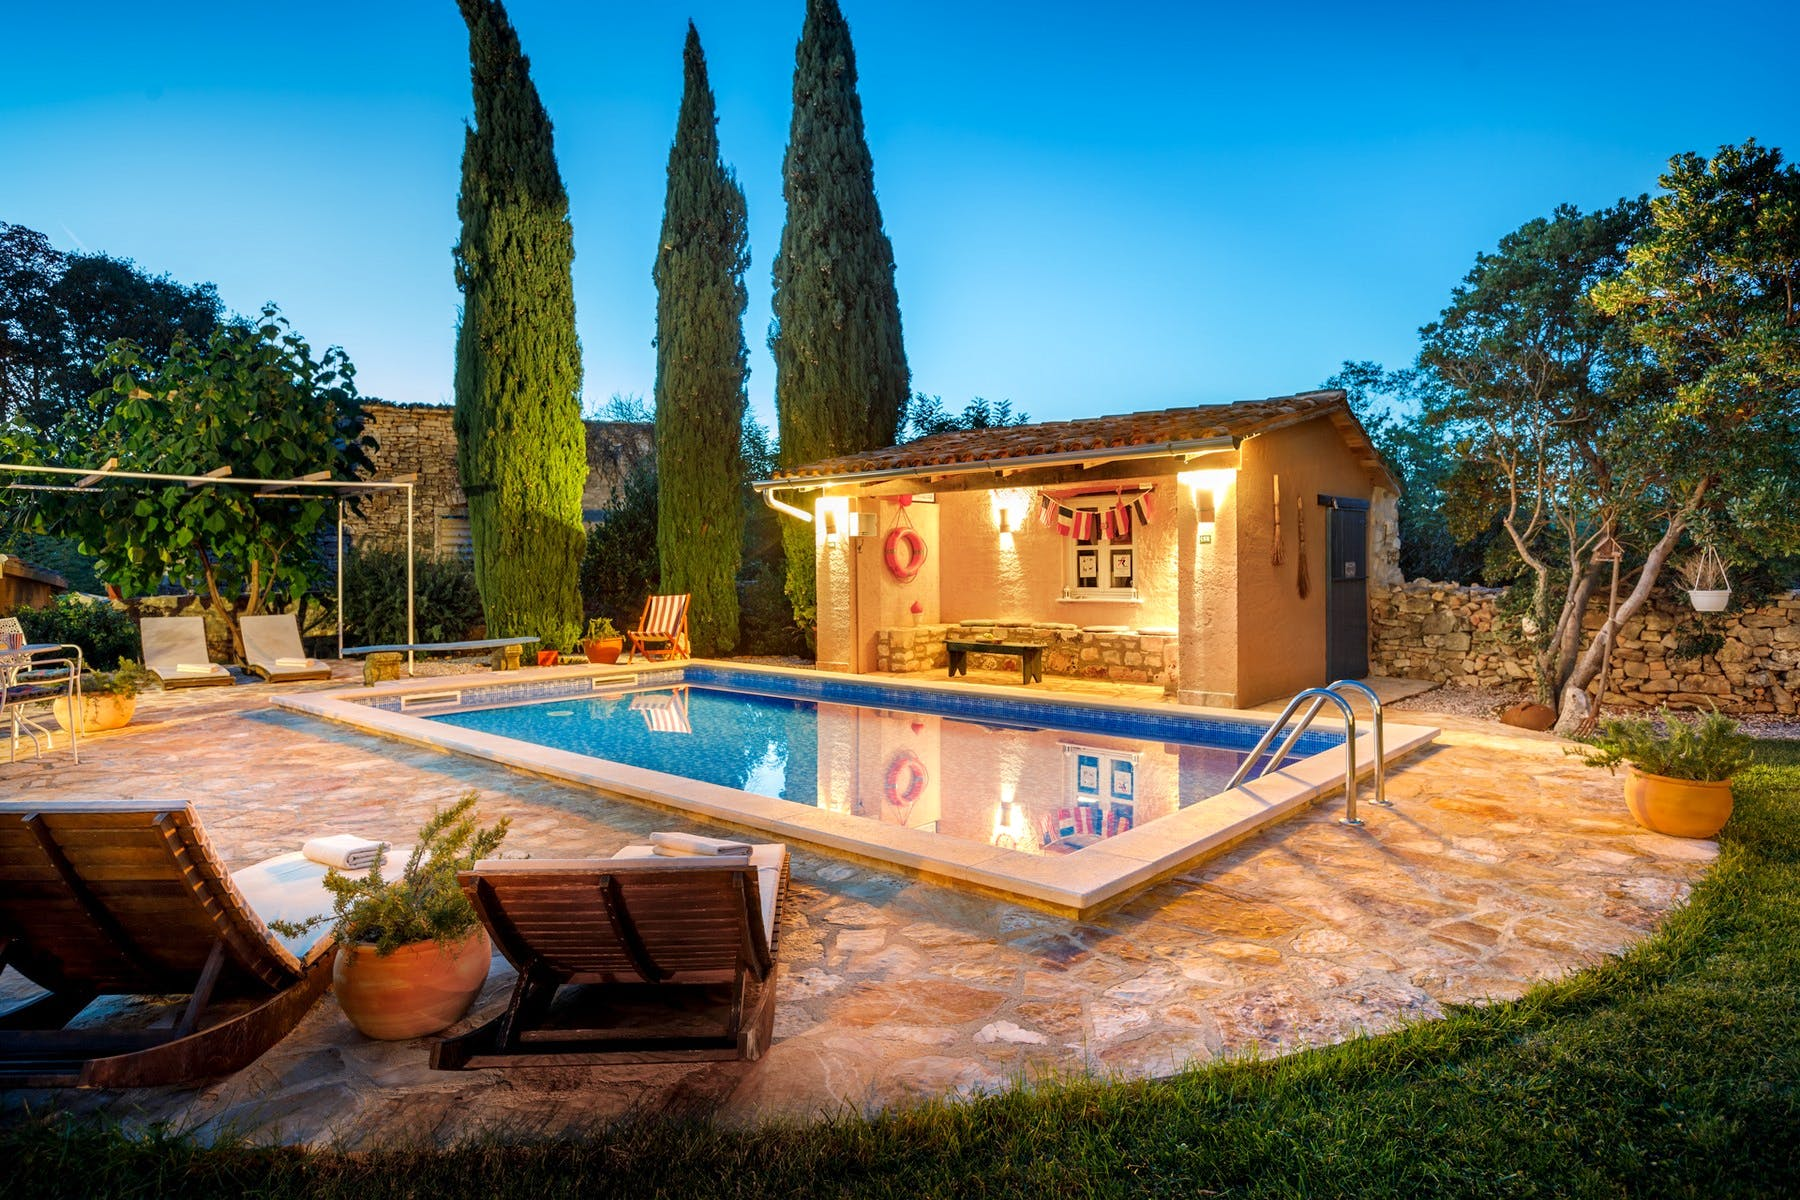 Carefully designed outside space with swimming pool, sundeck, and covered lounge area